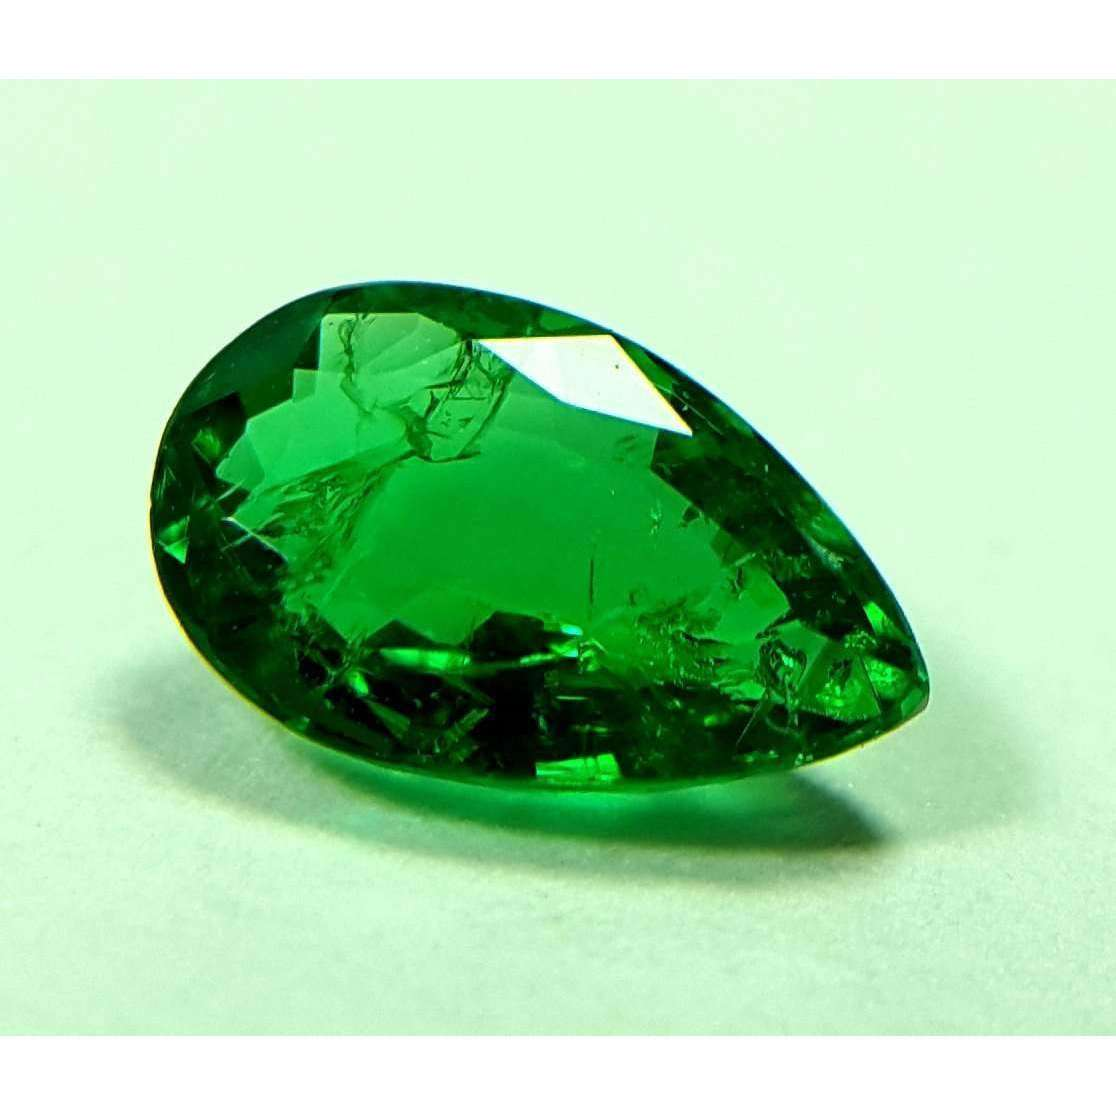 0.55 CT Natural Highest Luster Zambian Emerald 7 X 4.5 X 2.8 MM For Ring & Pendant